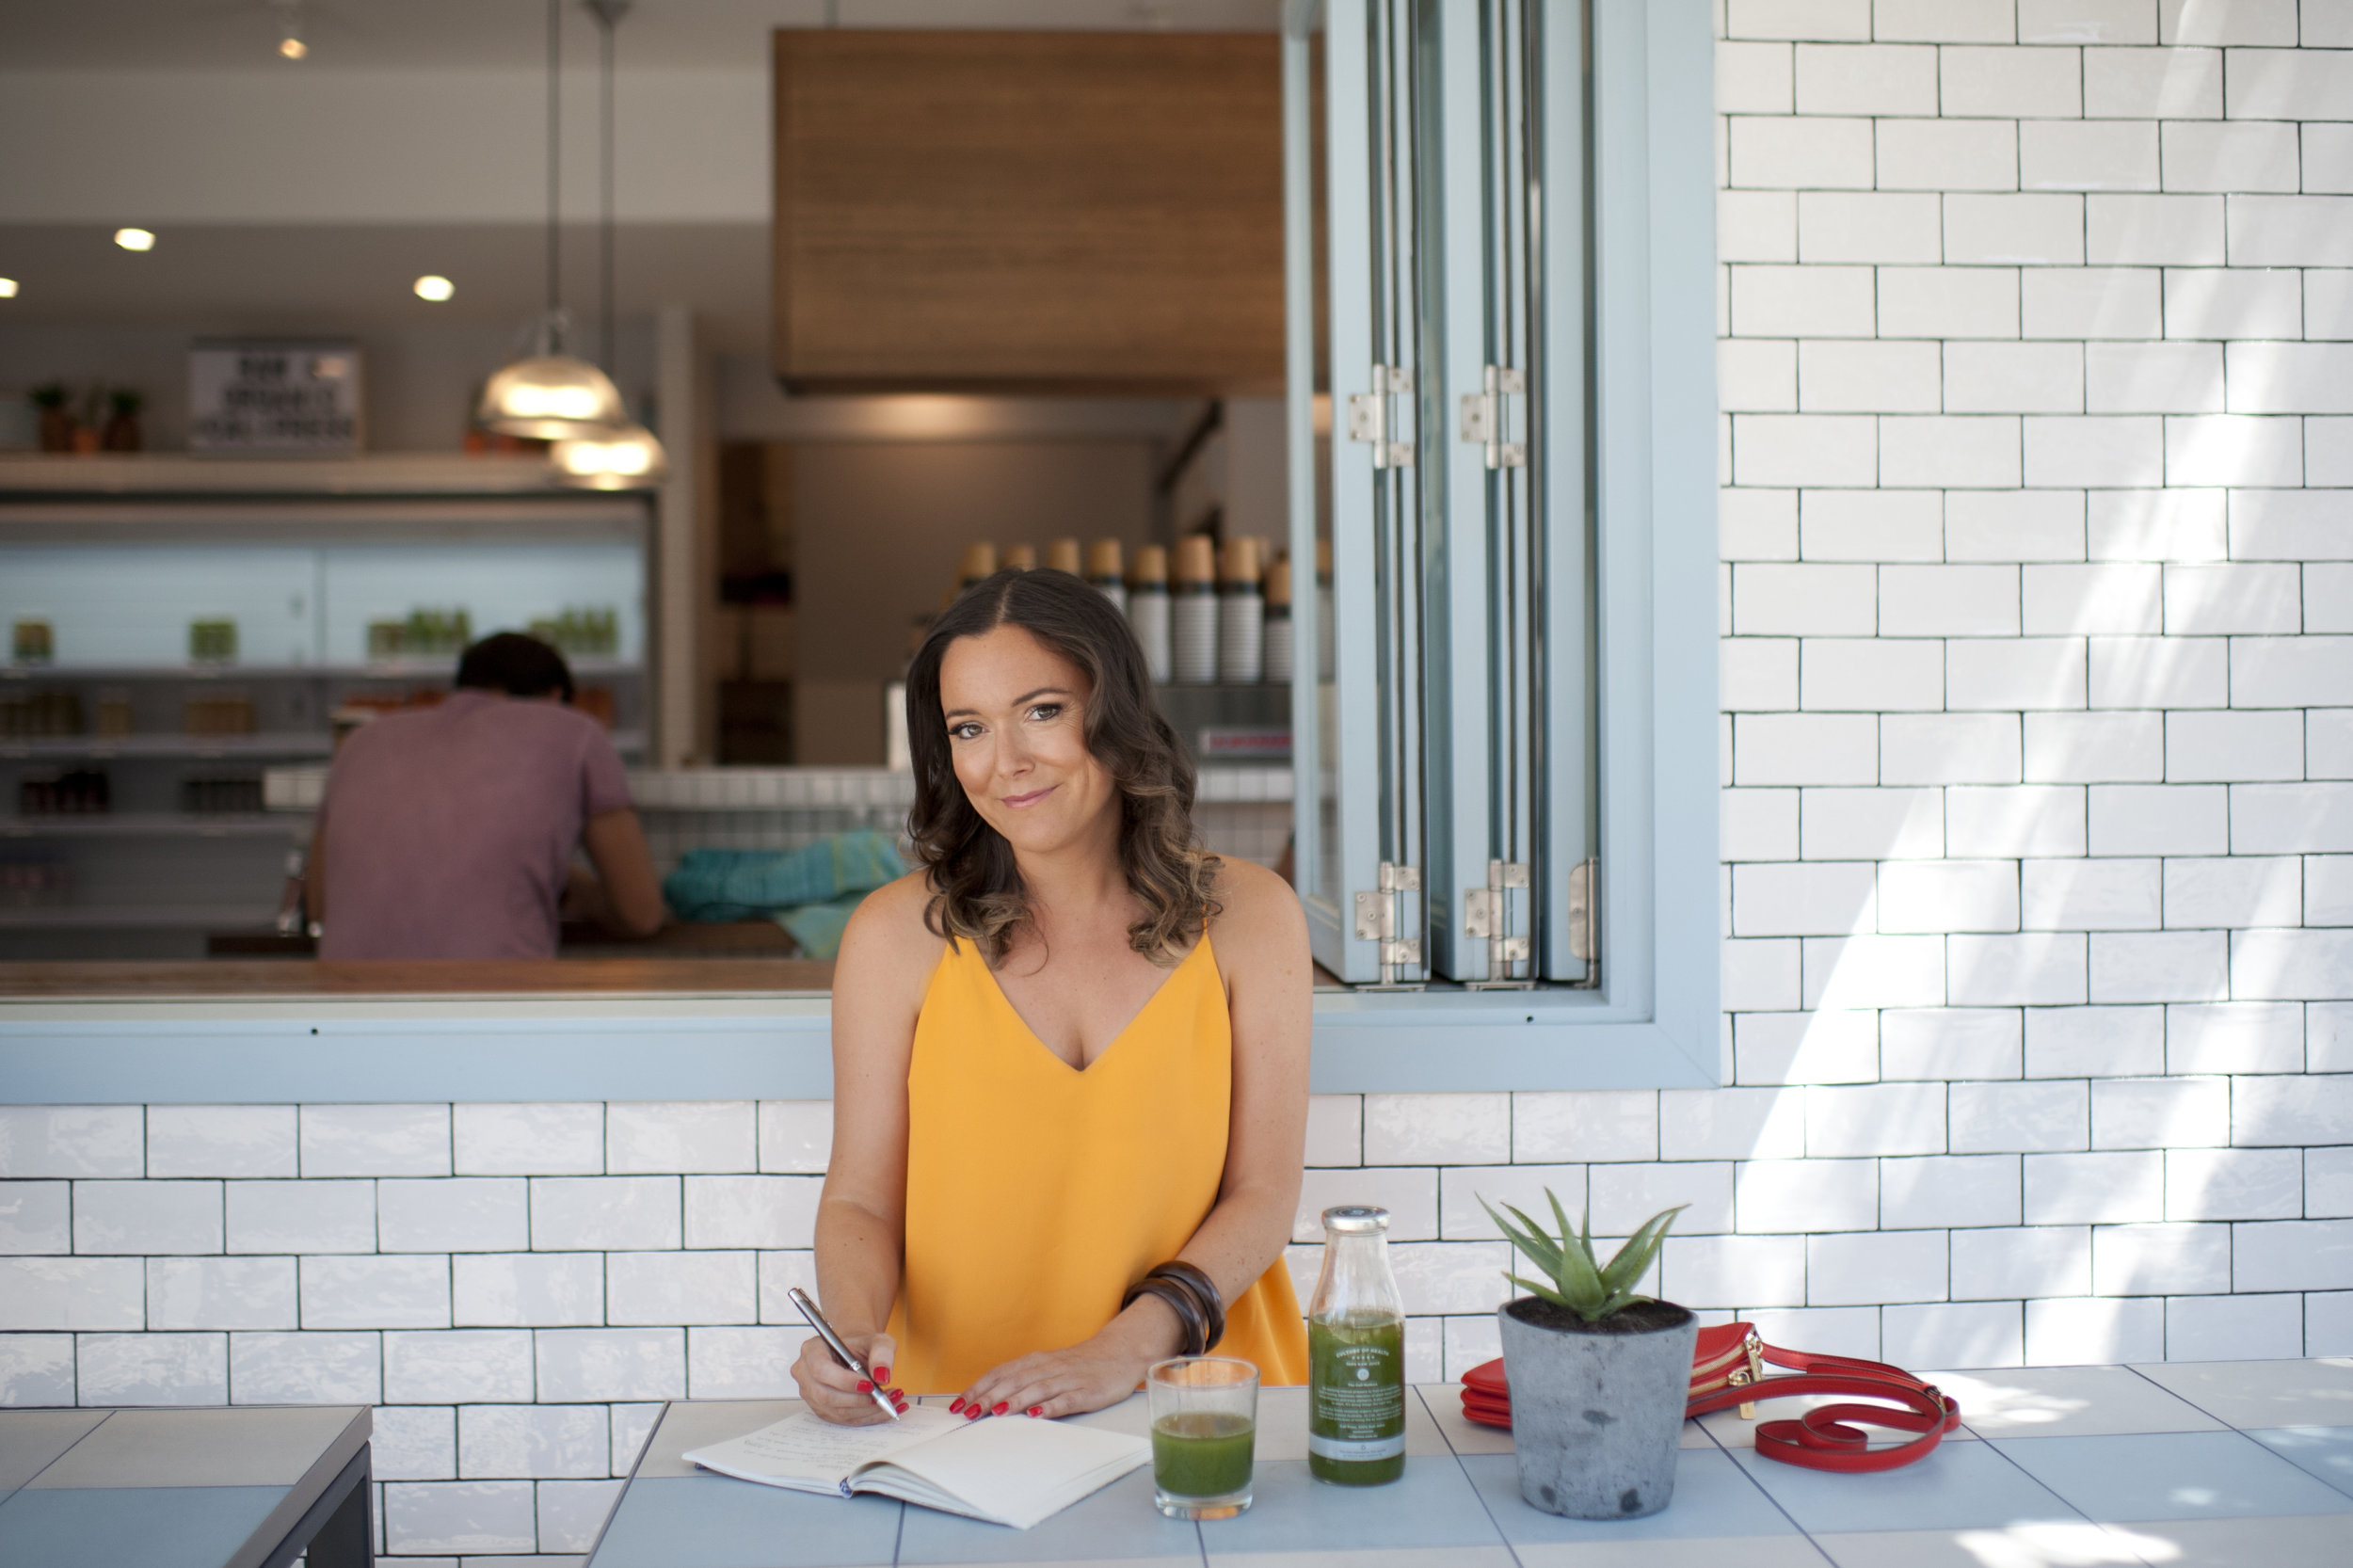 Working Cafes in Burleigh Heads